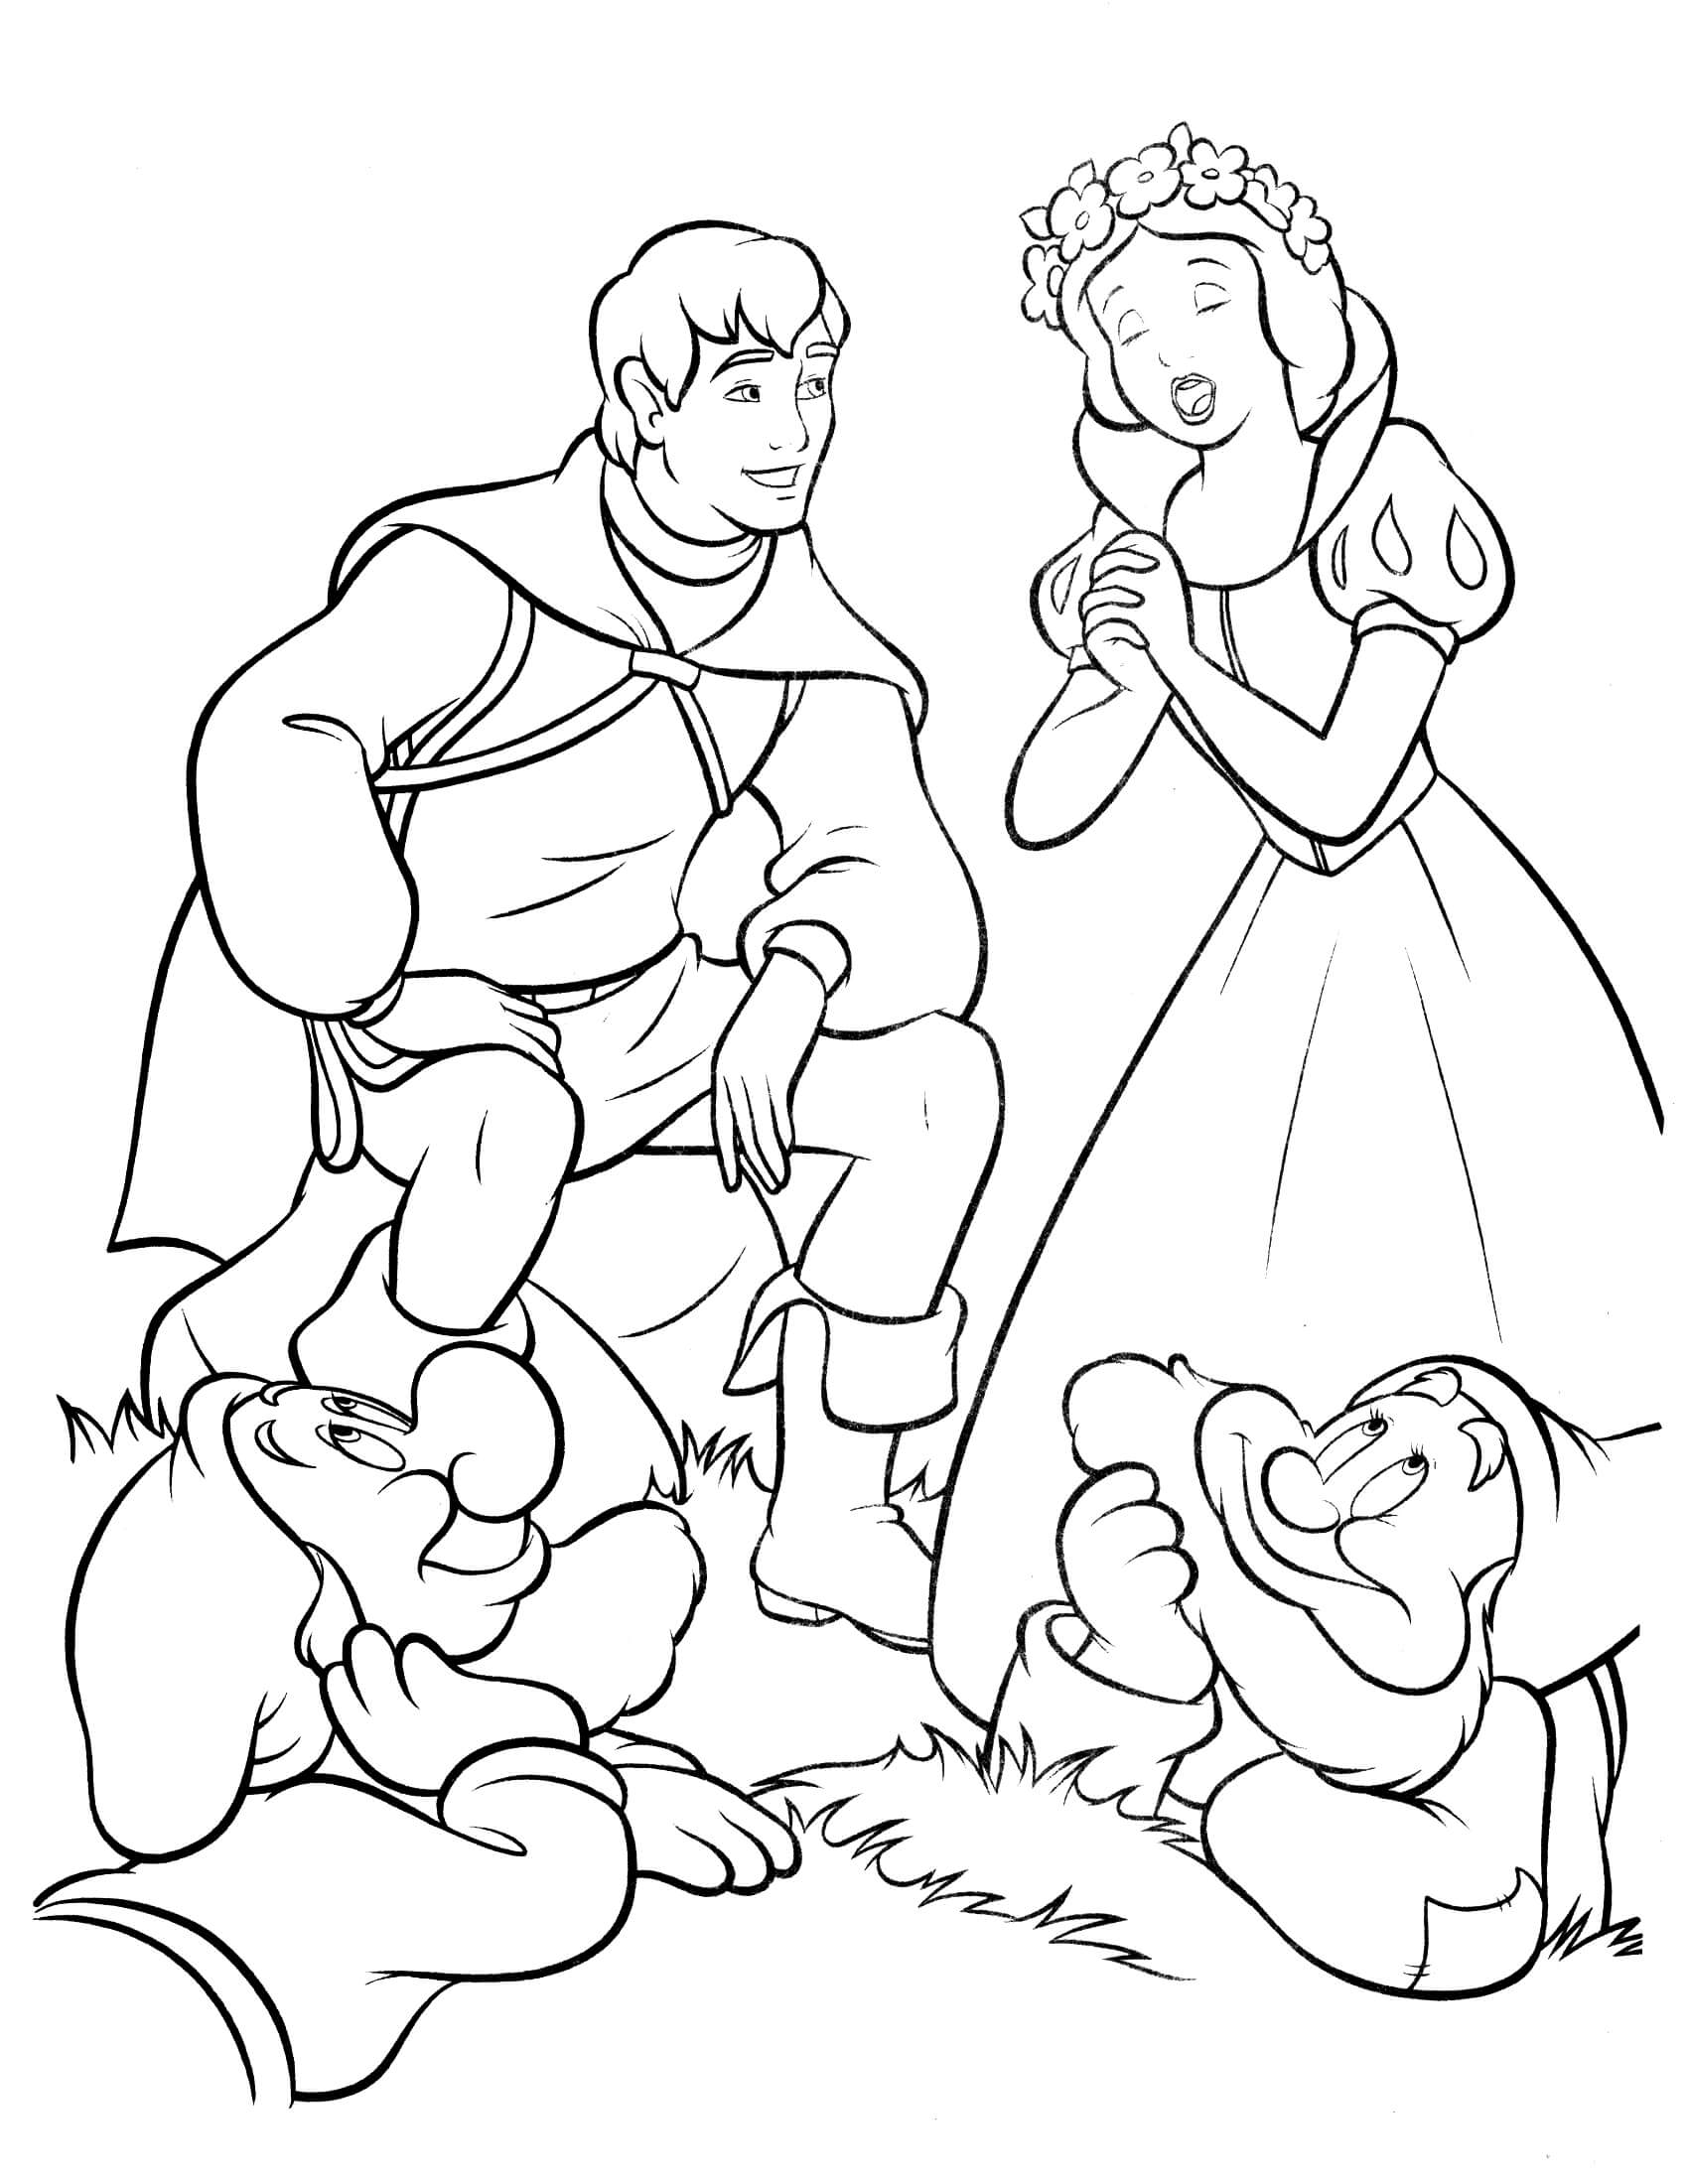 snowwhite coloring snow white coloring pages download and print snow white snowwhite coloring